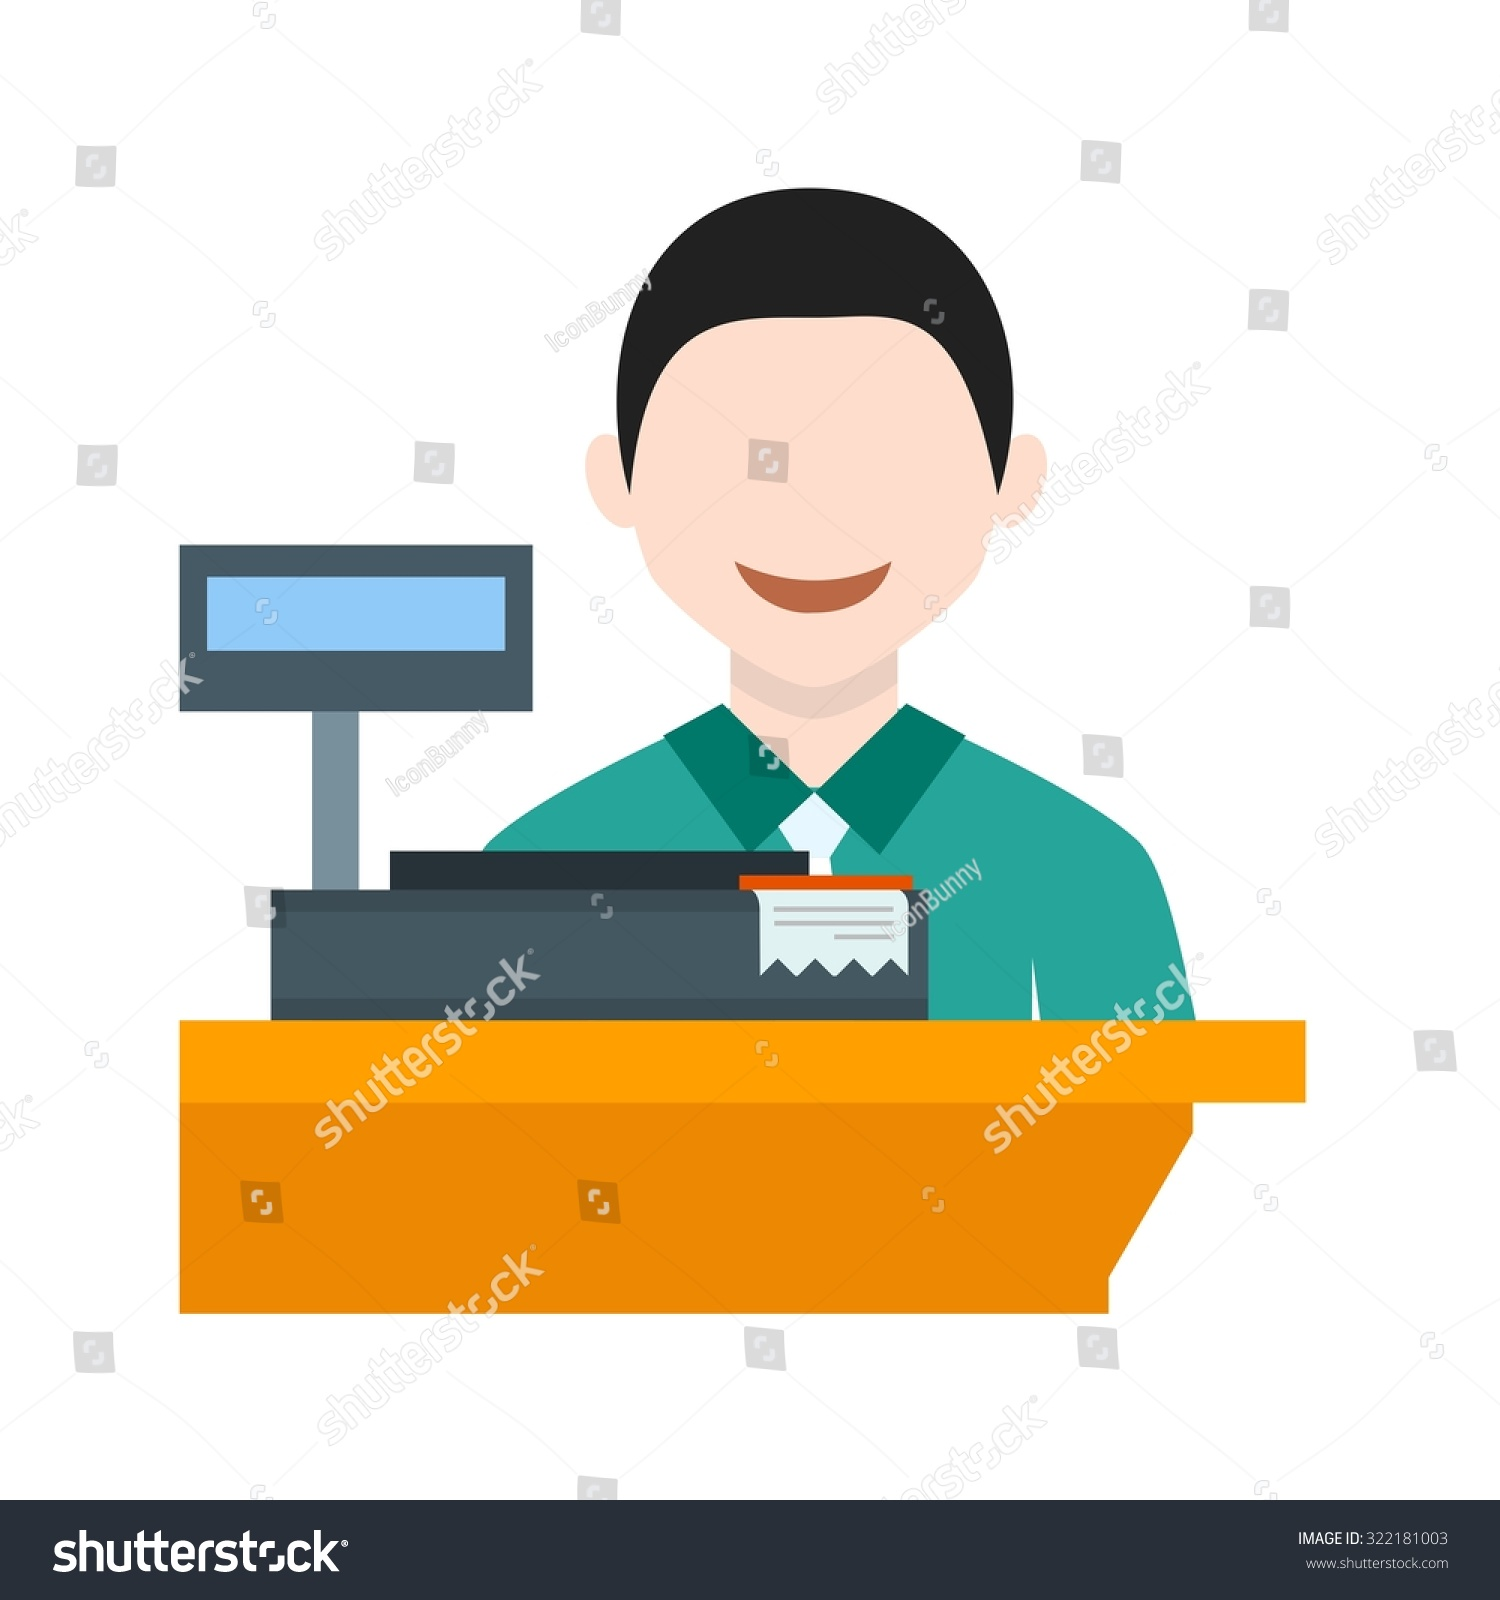 cashier bank cash icon vector image stock vector  cashier bank cash icon vector image can also be used for professionals